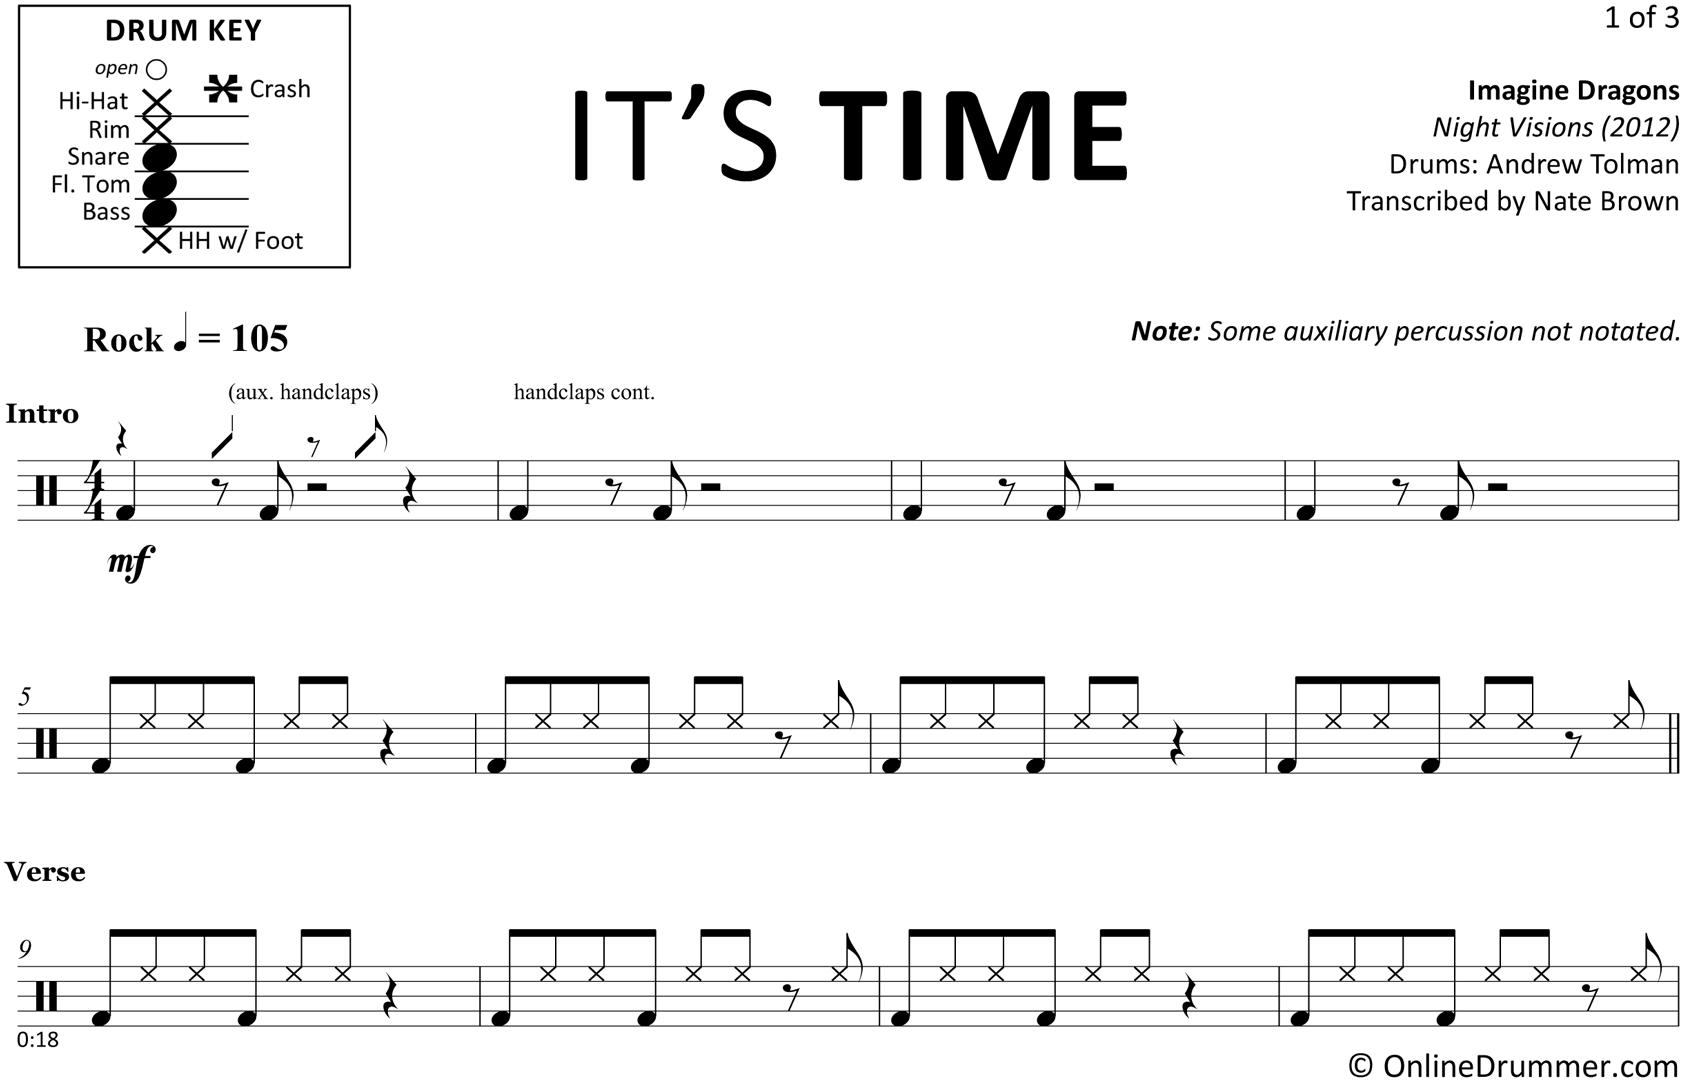 It's Time - Imagine Dragons - Drum Sheet Music